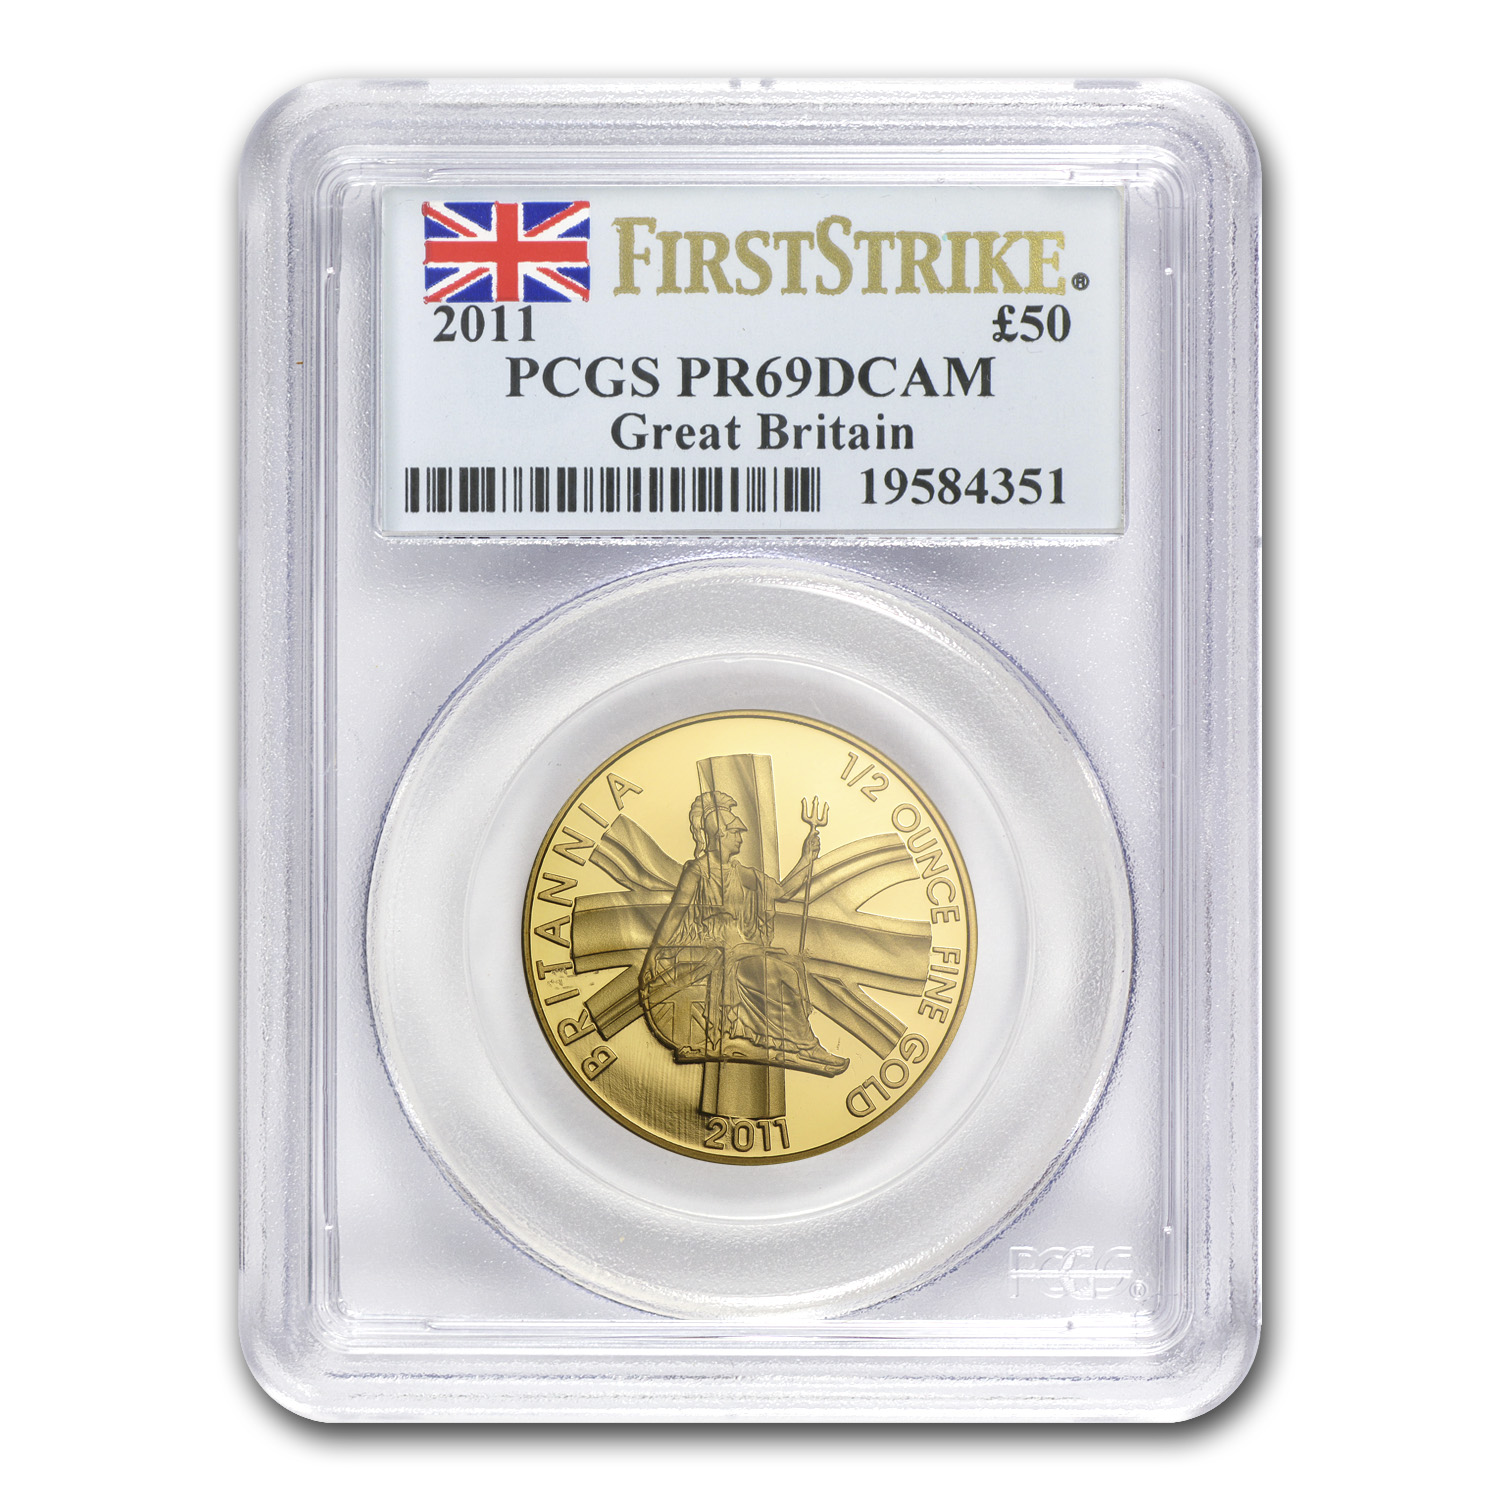 2011 Great Britain 1/2 oz Proof Gold Britannia PR-69 PCGS